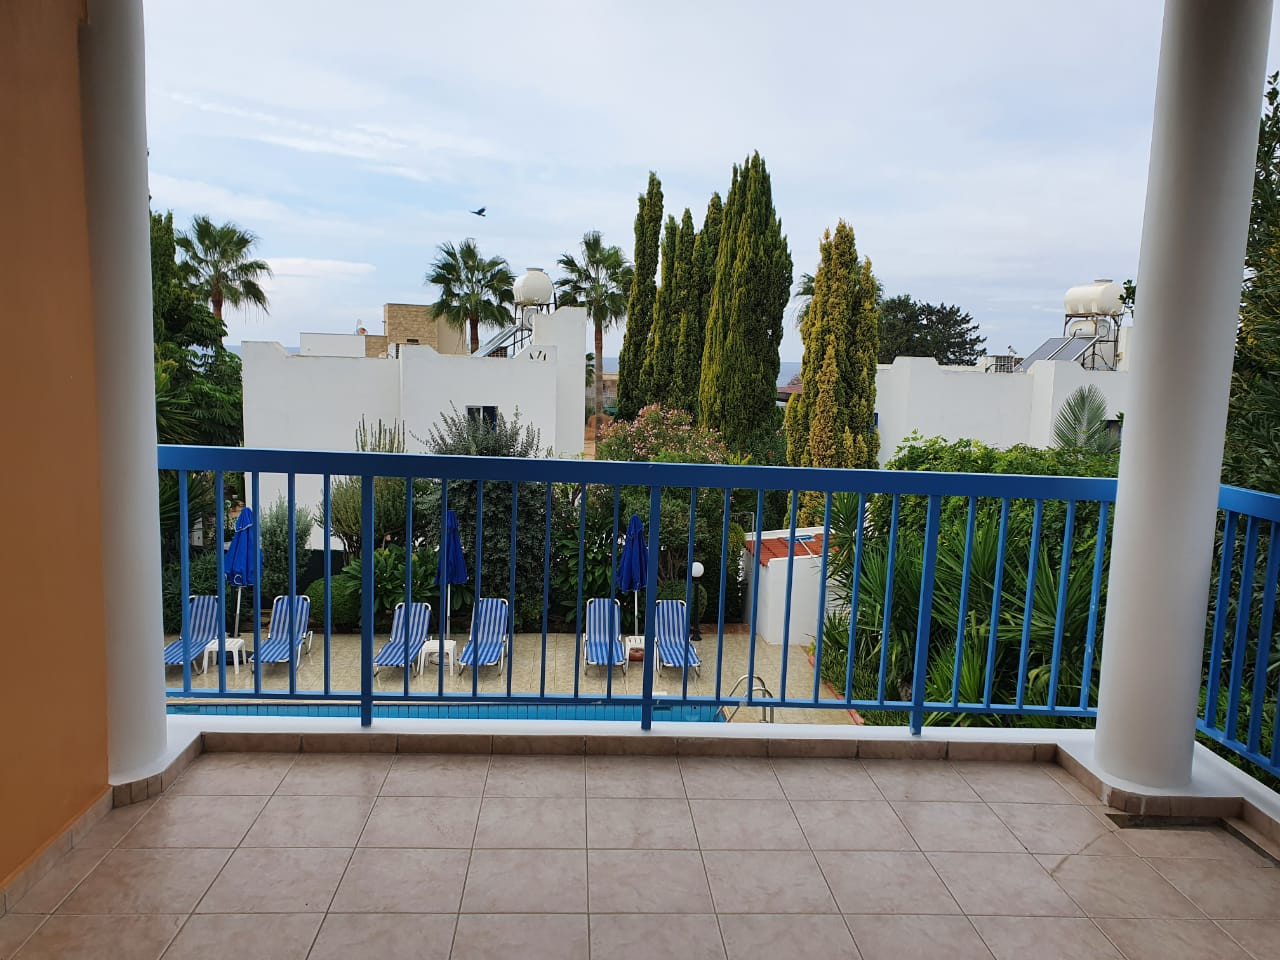 FC-28350: House (Detached) in Chlorakas, Paphos for Sale - #8